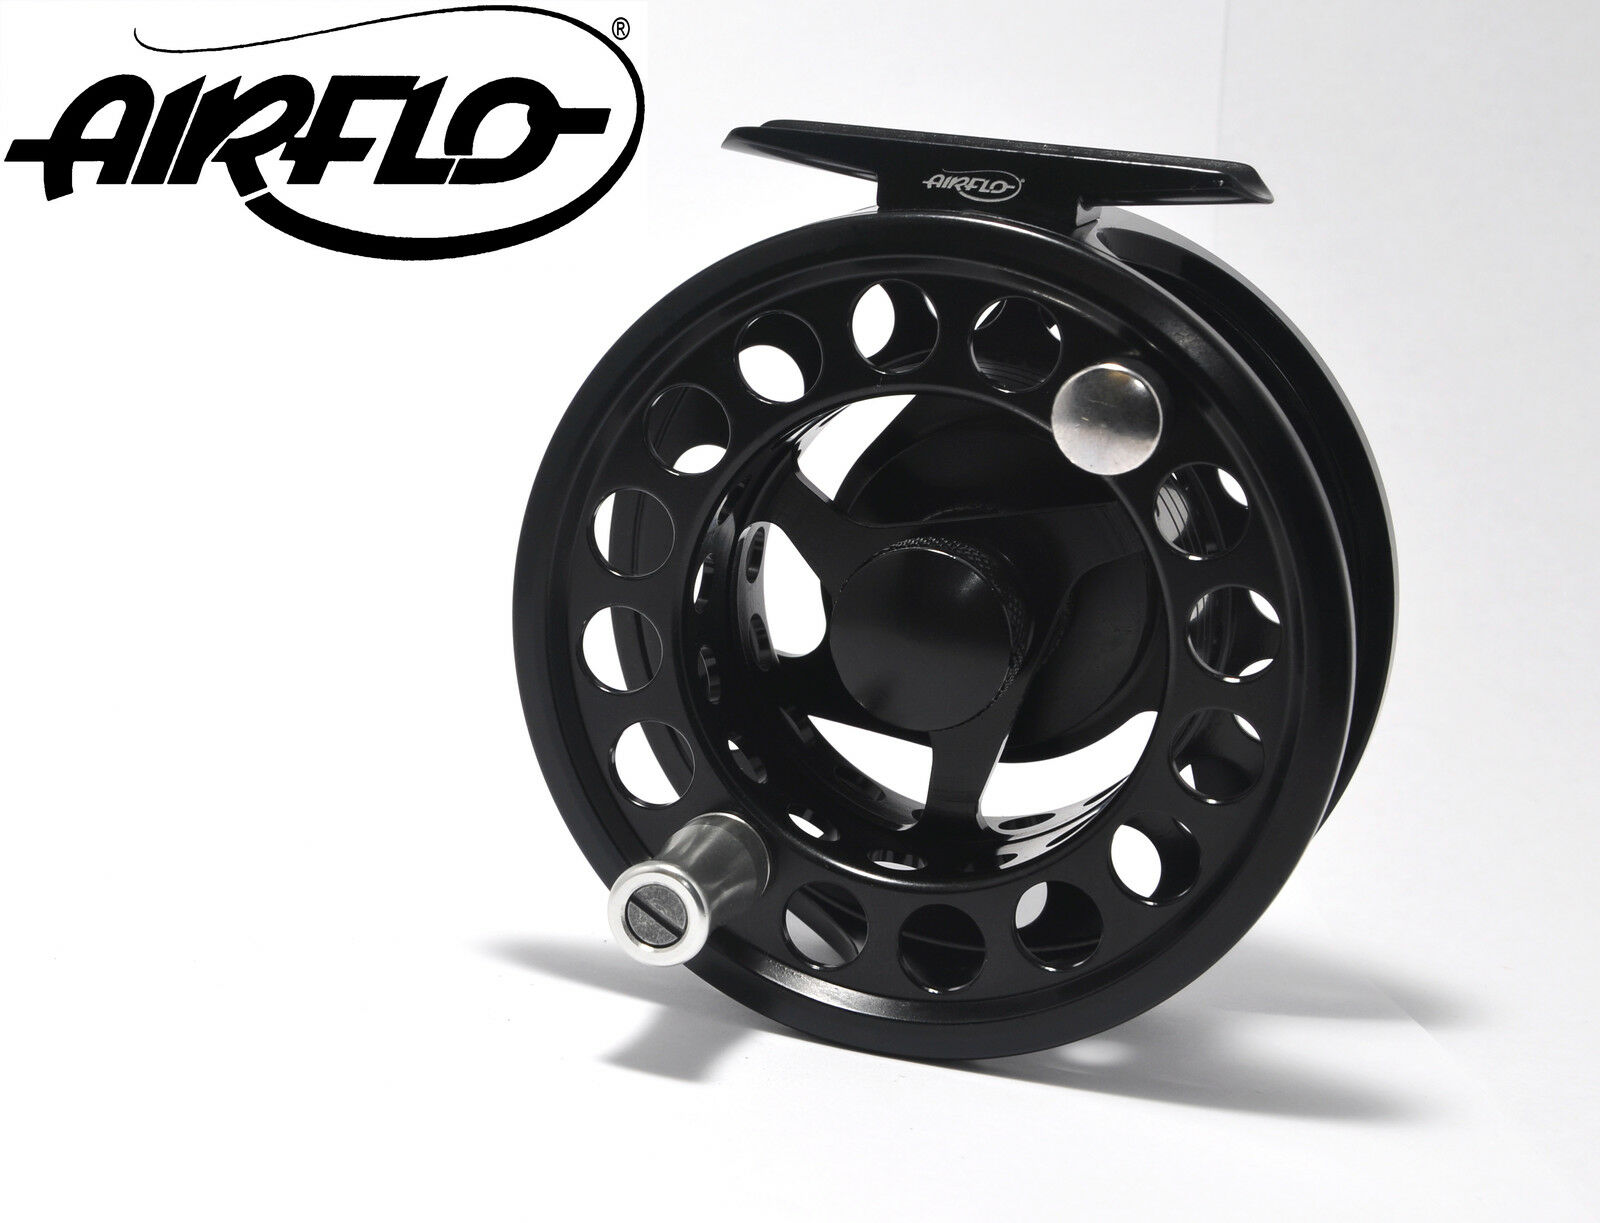 AIRFLO AIRTEC REELS ALL SIZES EX EX EX DEMO - Free P+P 6f3e4b